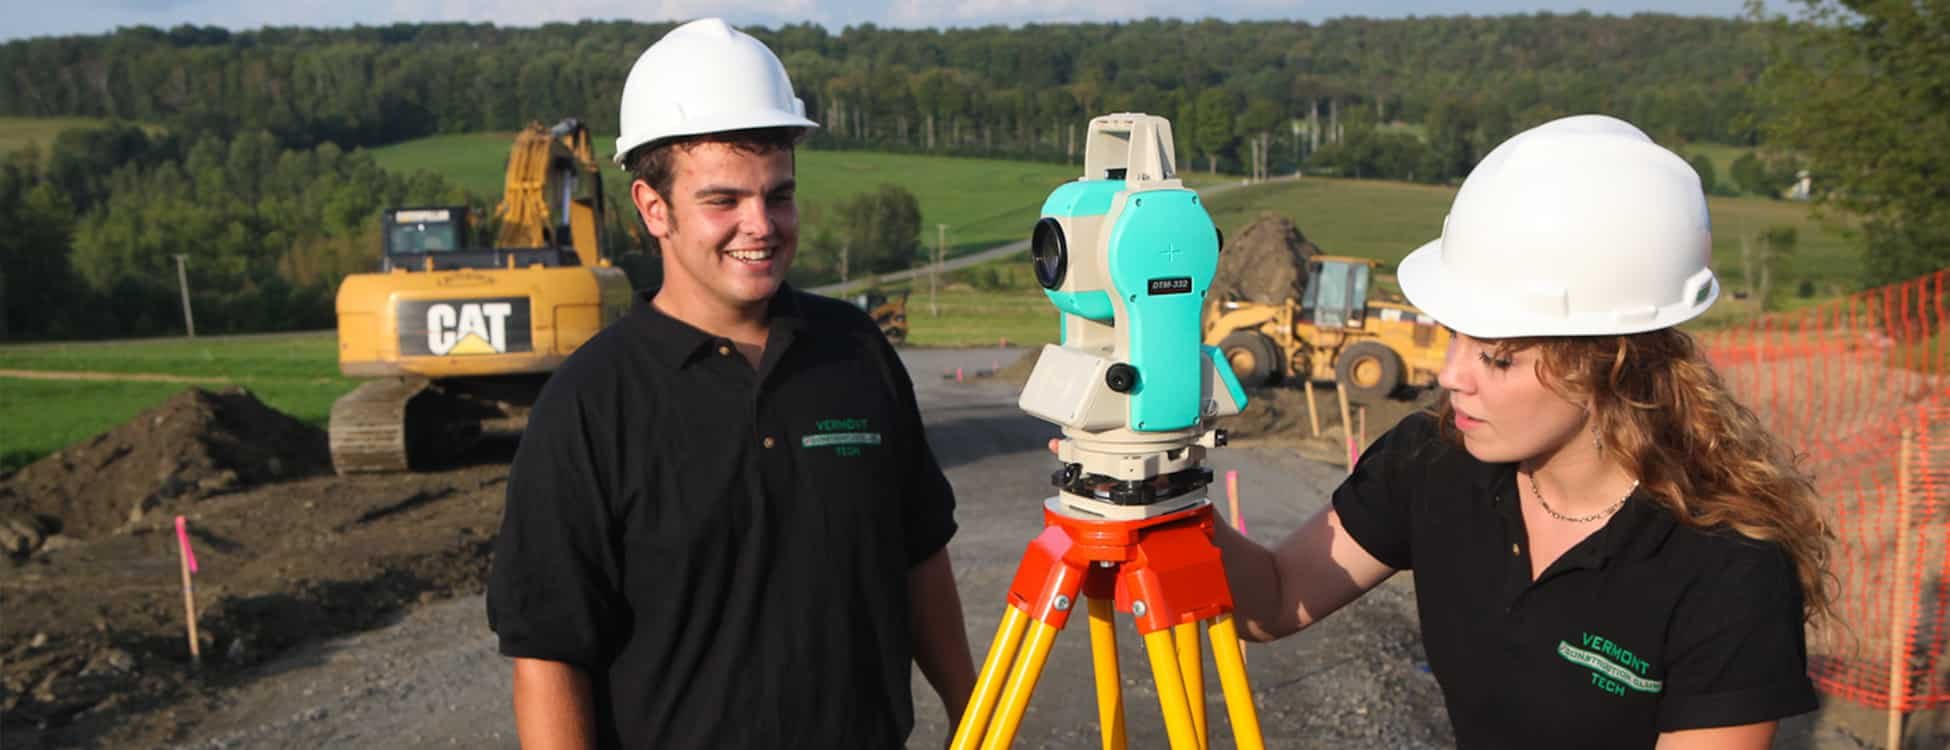 Students work with surveying equipment while on a construction management job site